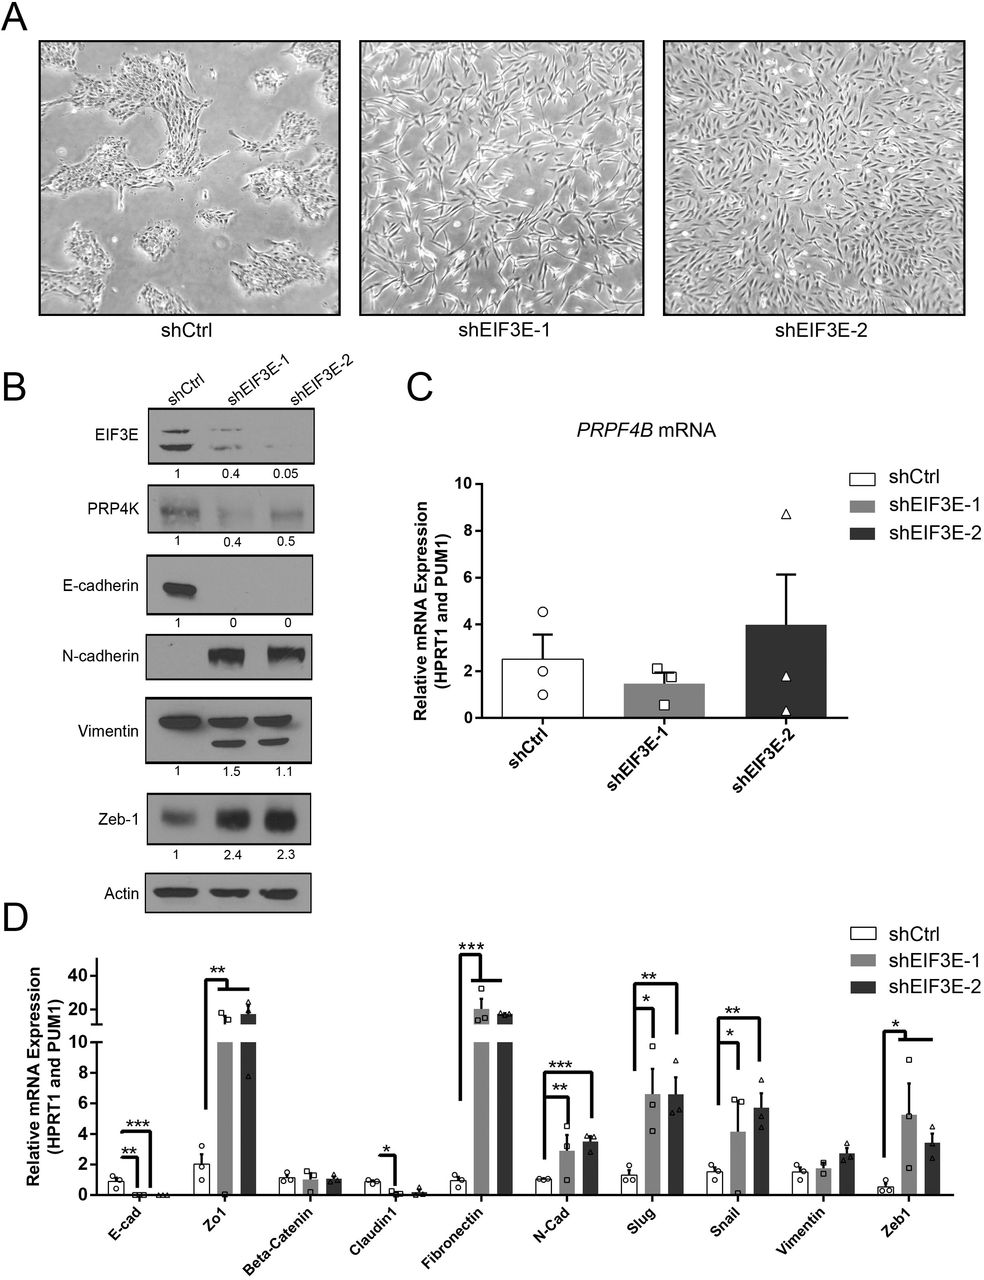 The induction of EMT by depletion of eIF3e decreases PRP4K protein expression in MCF10A cells. A ) Phase contrast micrographs of control (shCtrl) and eIF3e-depleted cells (shEIF3E-1 and shEIF3-2). B ) Western blot analysis of whole cell lysates of MCF10A shCtrl and shEIF3E cells for markers of EMT as indicated. C ) Quantitative PCR of PRP4K gene ( PRPF4B ) mRNA expression in MCF10A shCtrl and shEIF3E cells. D ) Quantitative PCR analysis of EMT-associated gene expression (as indicated) in MCF10A shCtrl and shEIF3E cells. N = 3, error bars= SEM. Significance was determined by a t-test. *=p